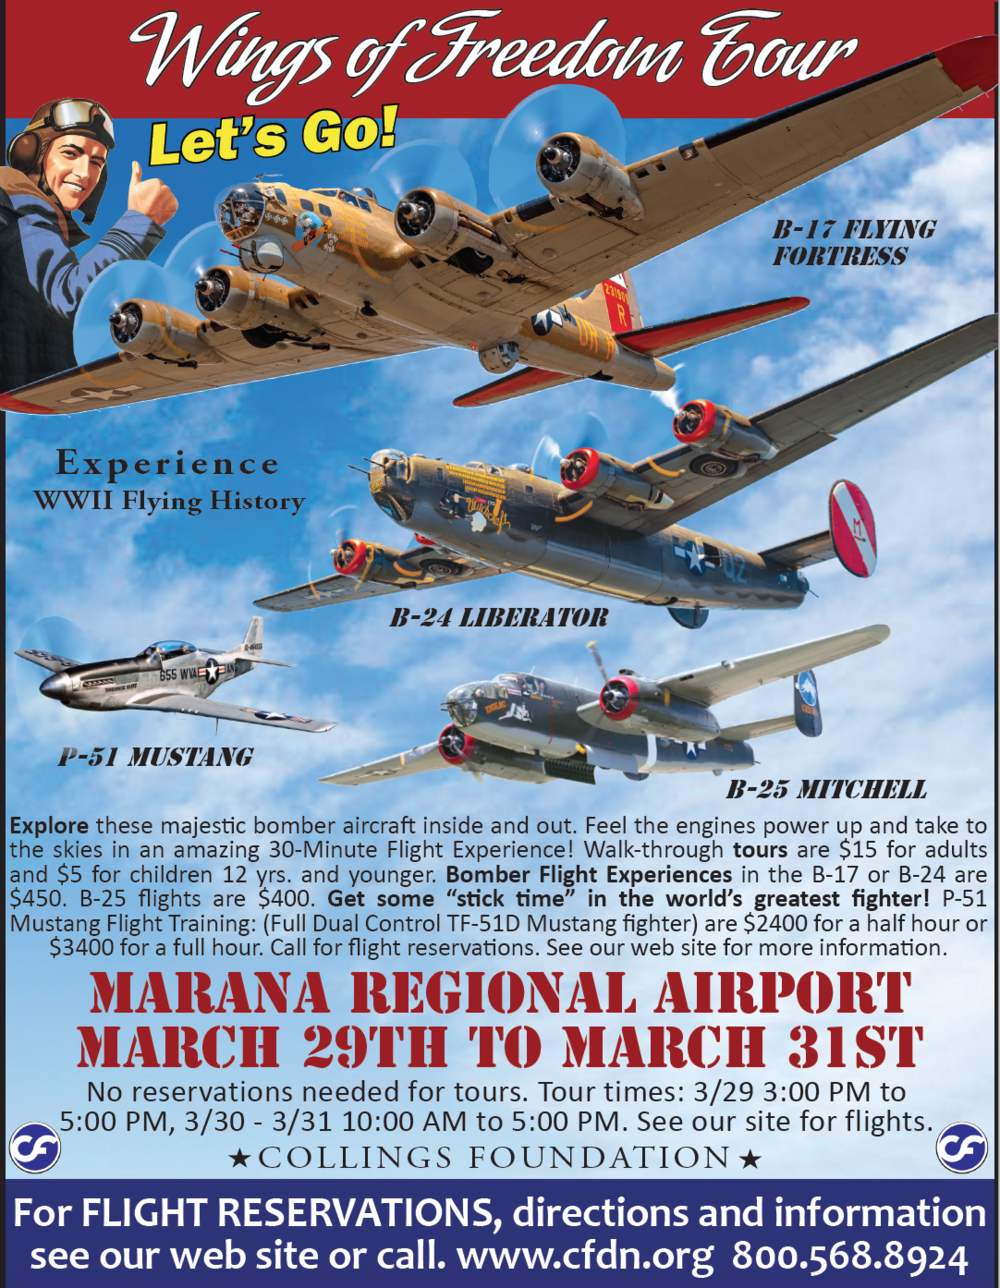 The Wings of Freedom Tour is coming to the Marana Regional Airport from March 29-March 31.